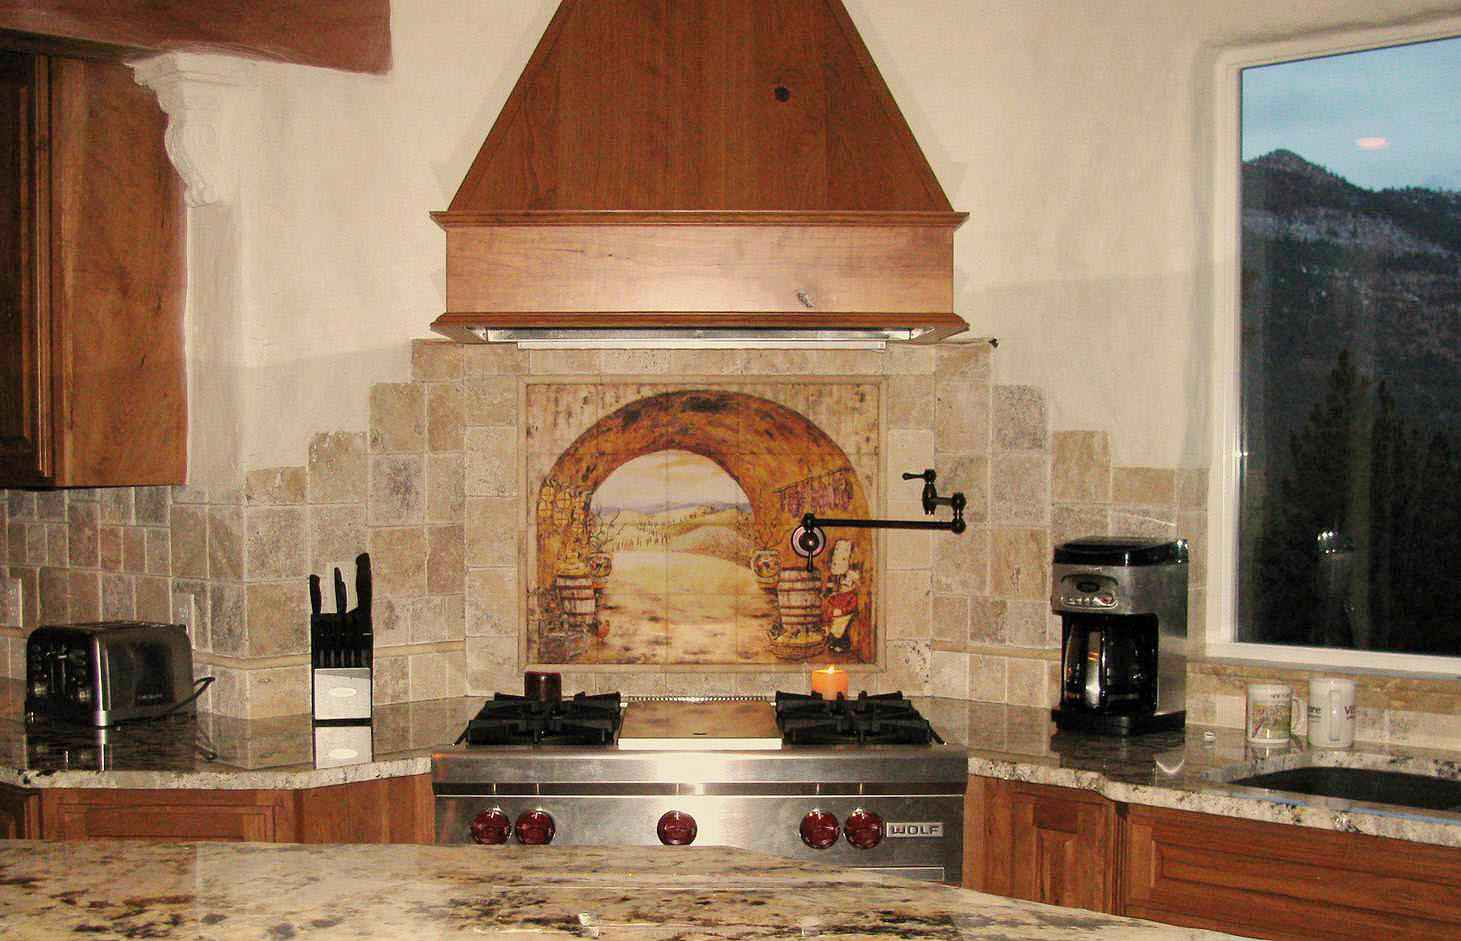 Backsplash design ideas for your kitchen for Back splash tile